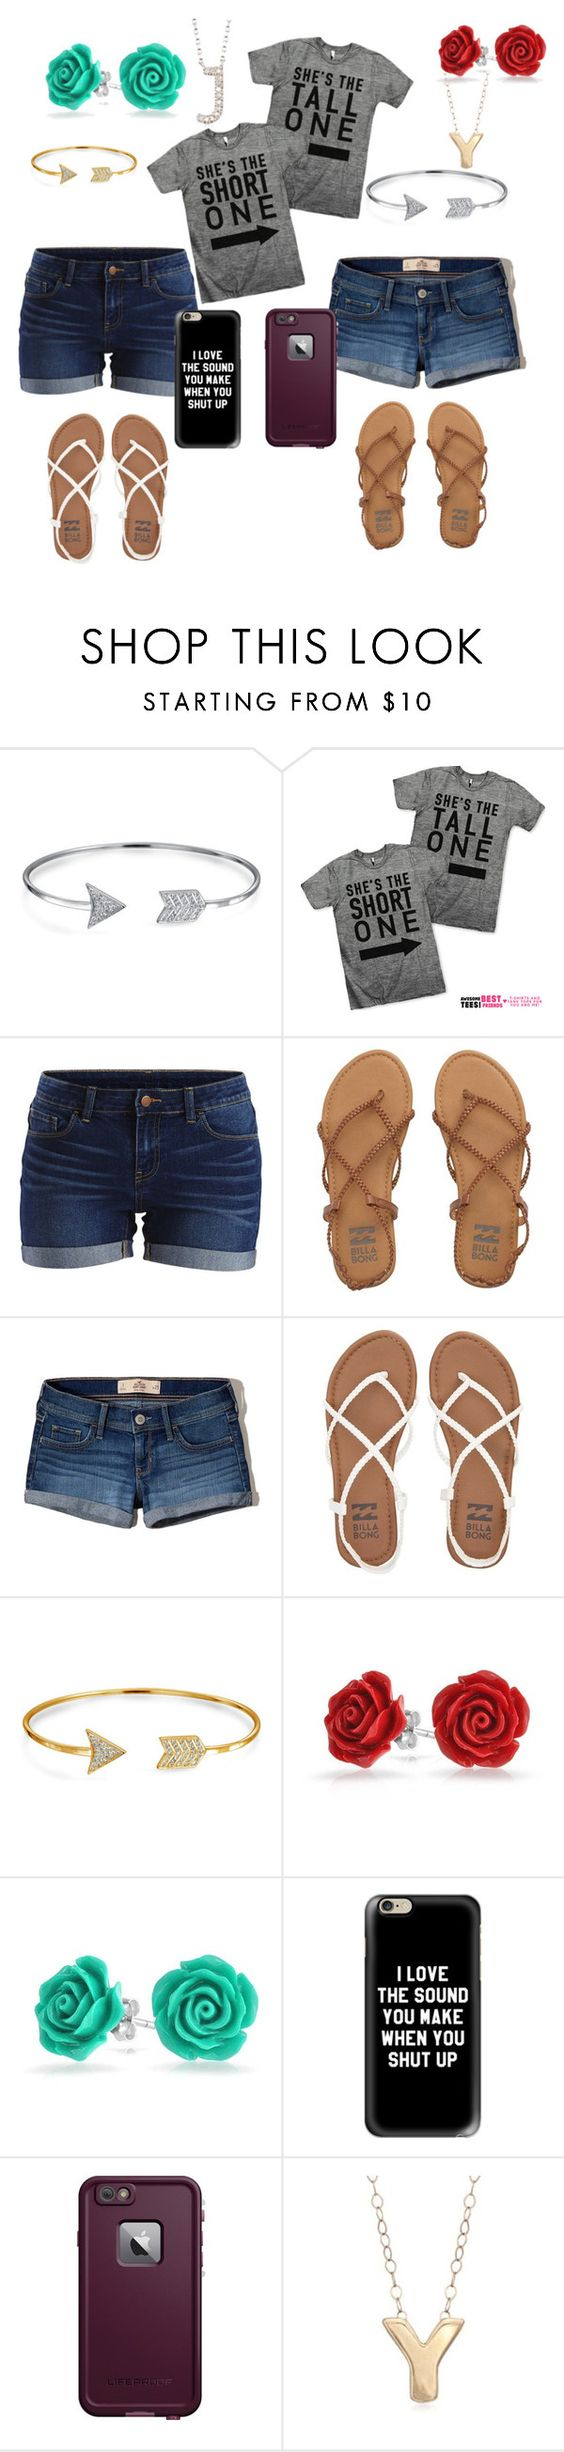 """Untitled #64"" by yvette1118 ❤ liked on Polyvore featuring Bling Jewelry, VILA, Billabong, Hollister Co., Casetify, LifeProof and Ross-Simons"